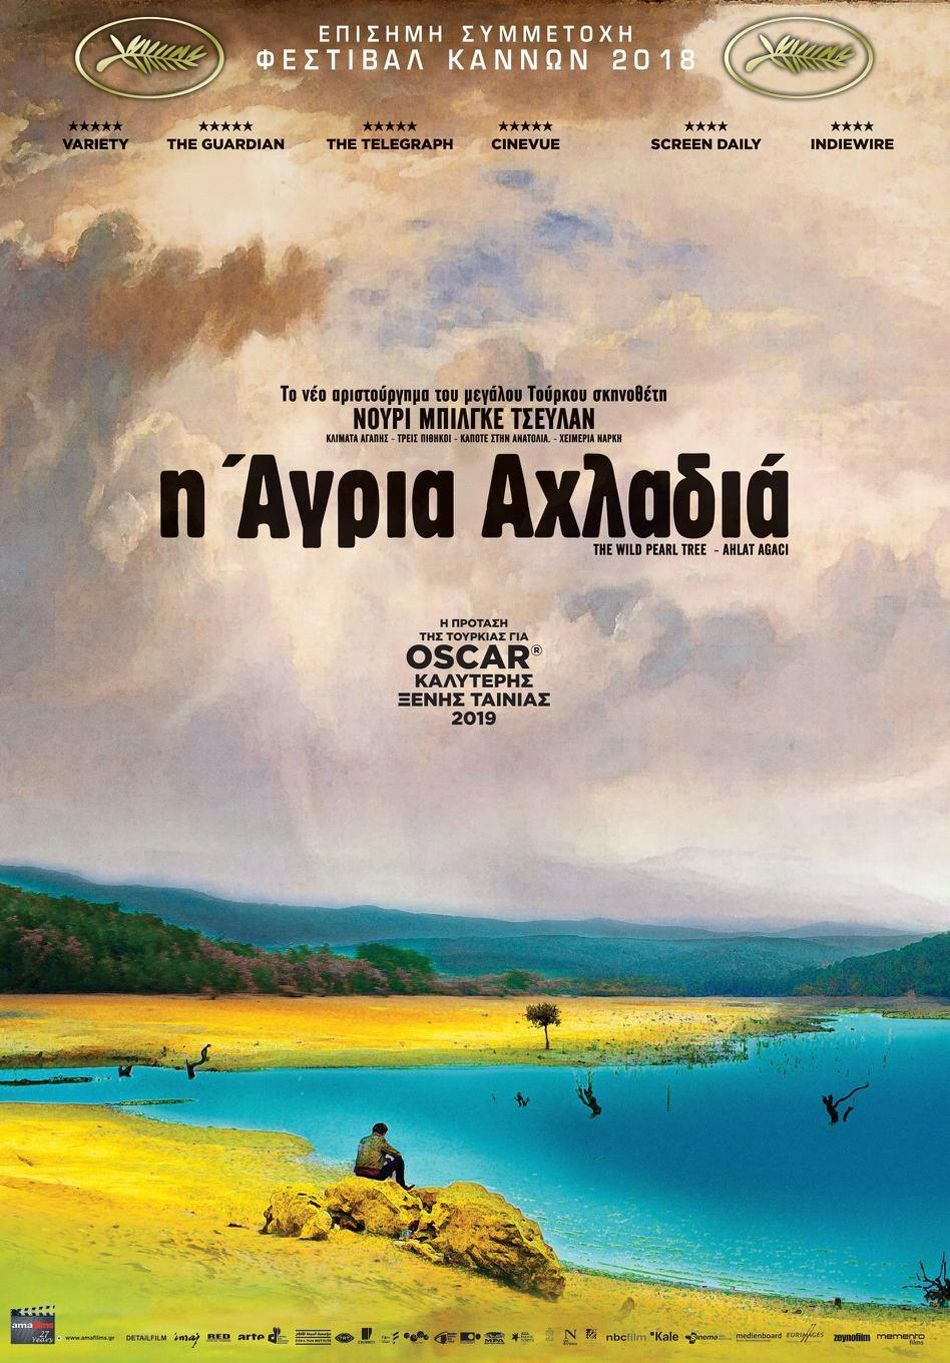 Η Άγρια Αχλαδιά (Ahlat Agaci / The Wild Pear Tree) Poster